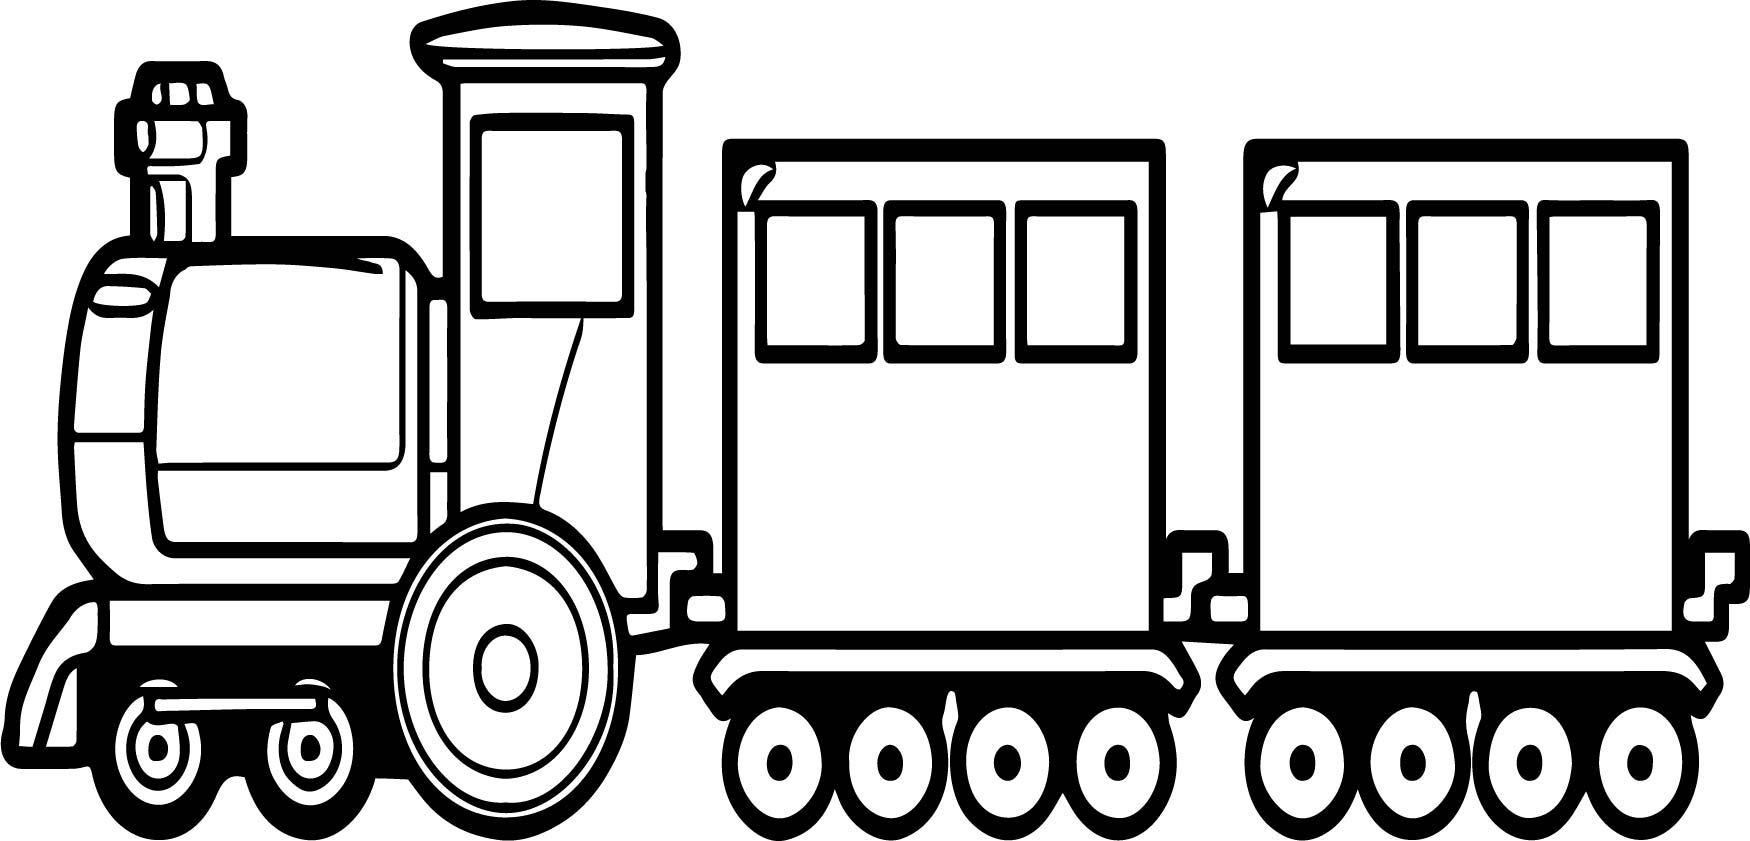 Train coloring template - Go Train Coloring Page